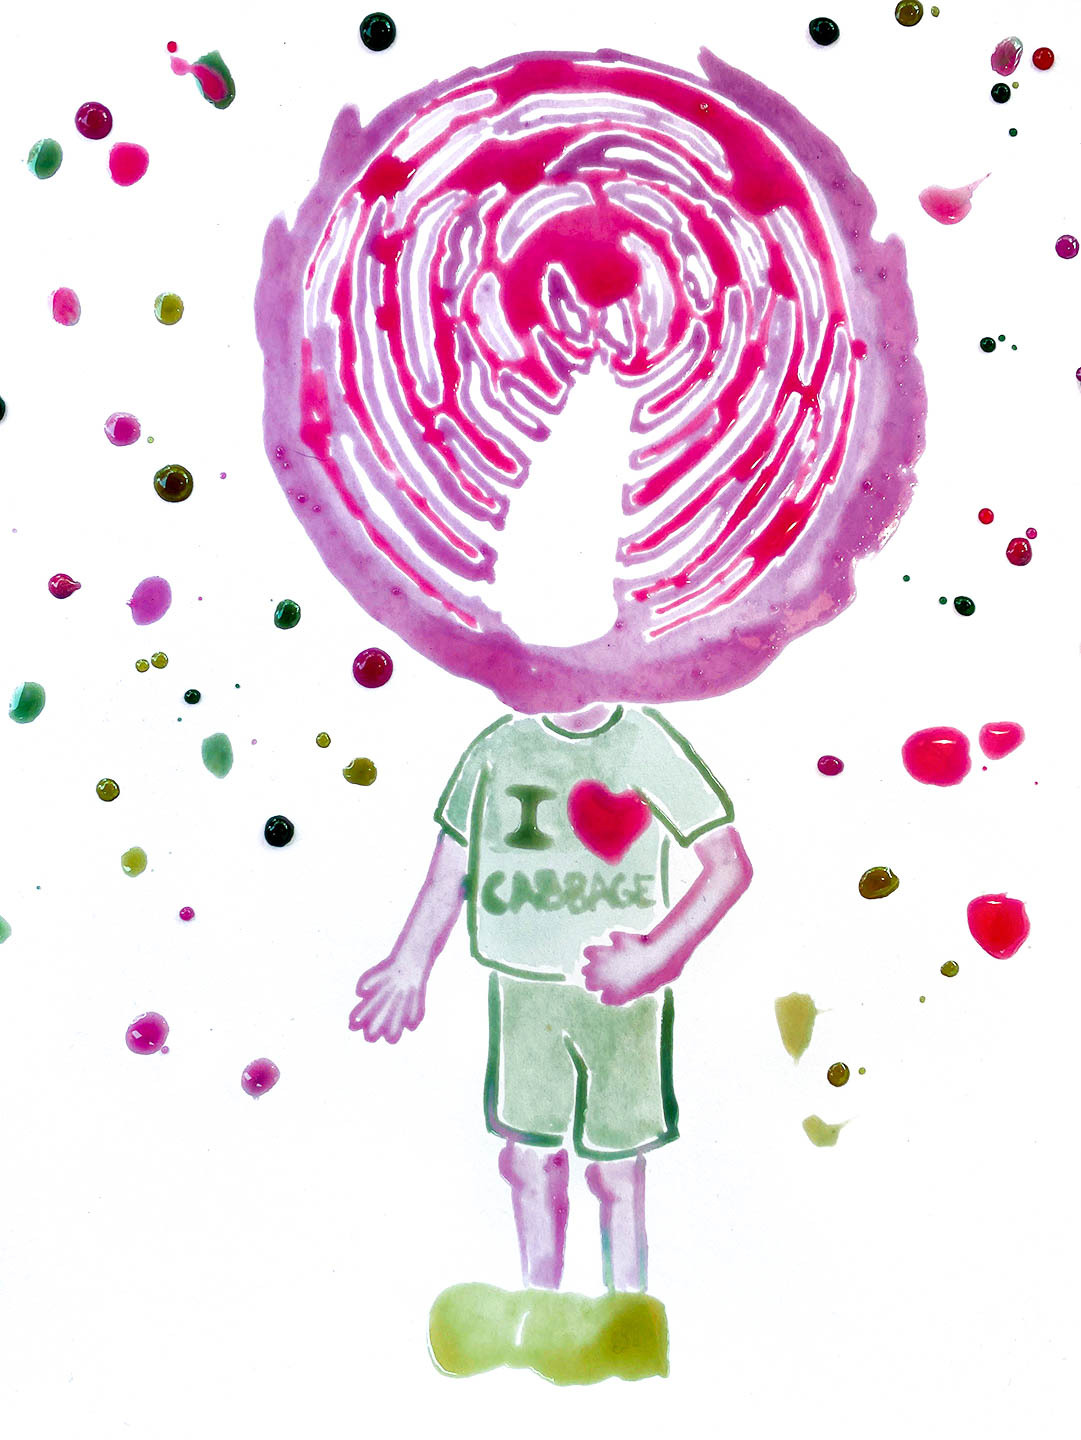 A watercolor painting made with pigments from a cabbage.